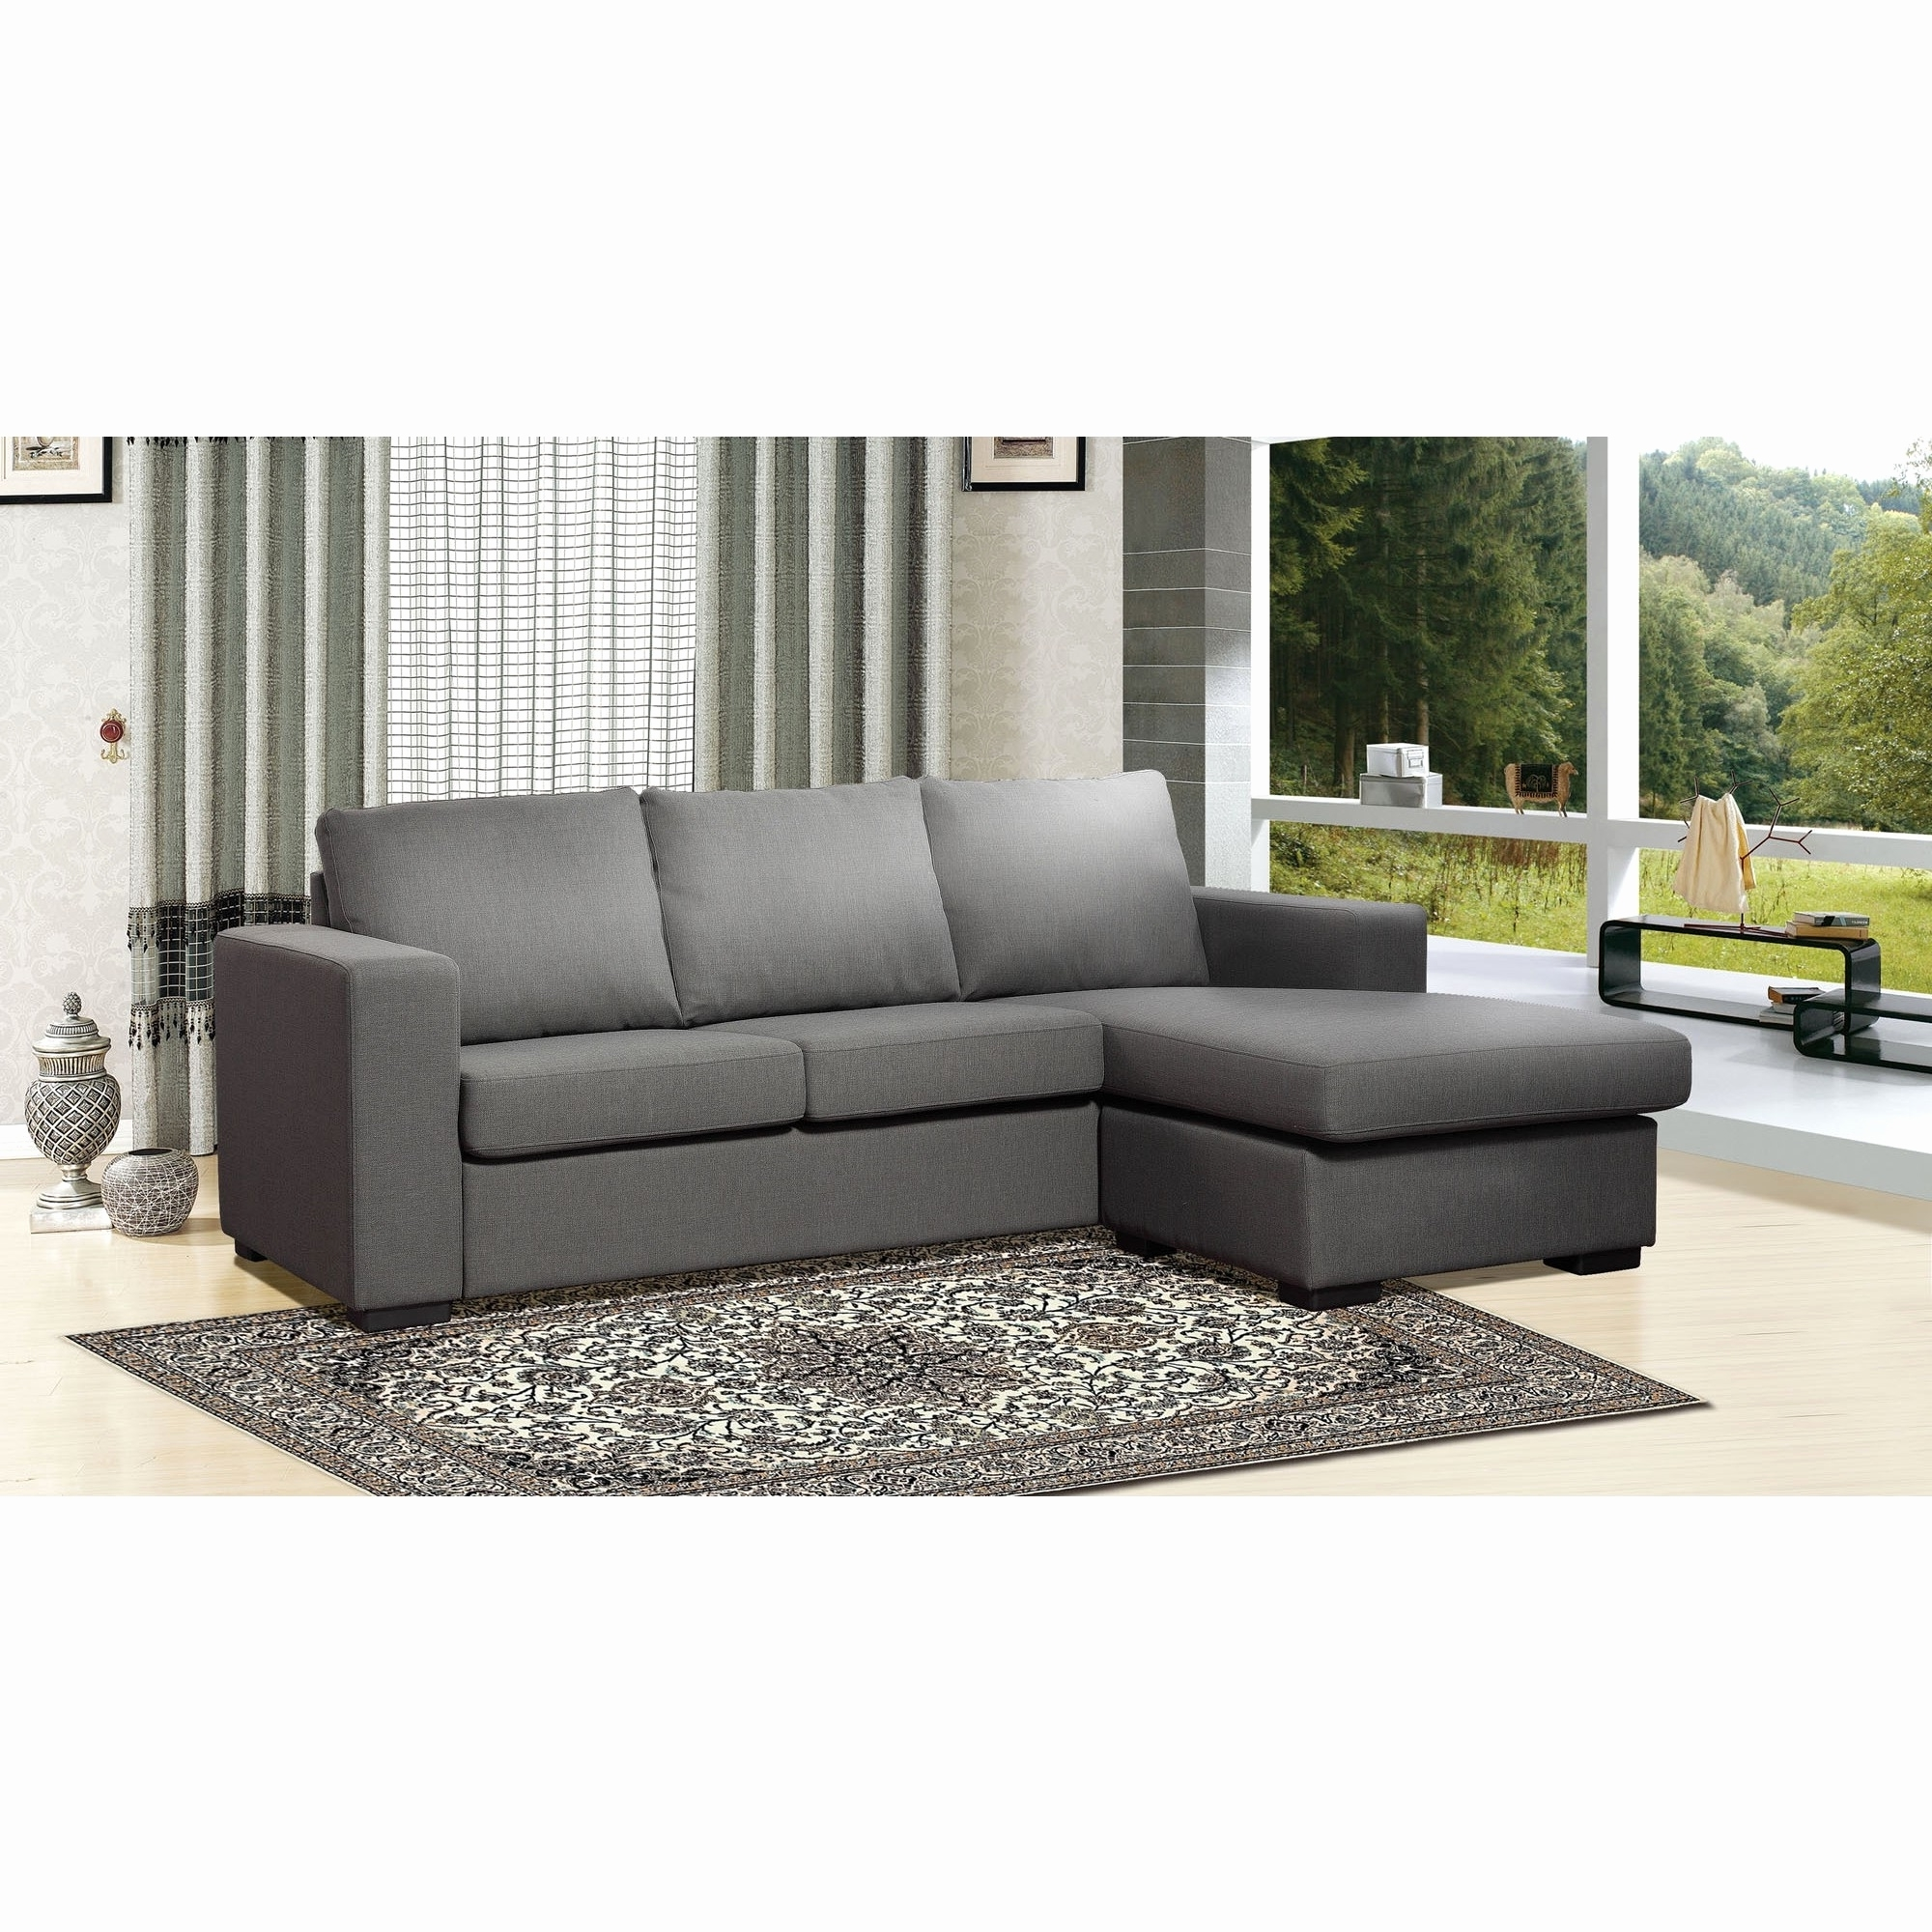 Famous Grey Sectional Sofas With Chaise With Unique Gray Sectional Sofa With Chaise 2018 – Couches Ideas (View 2 of 15)